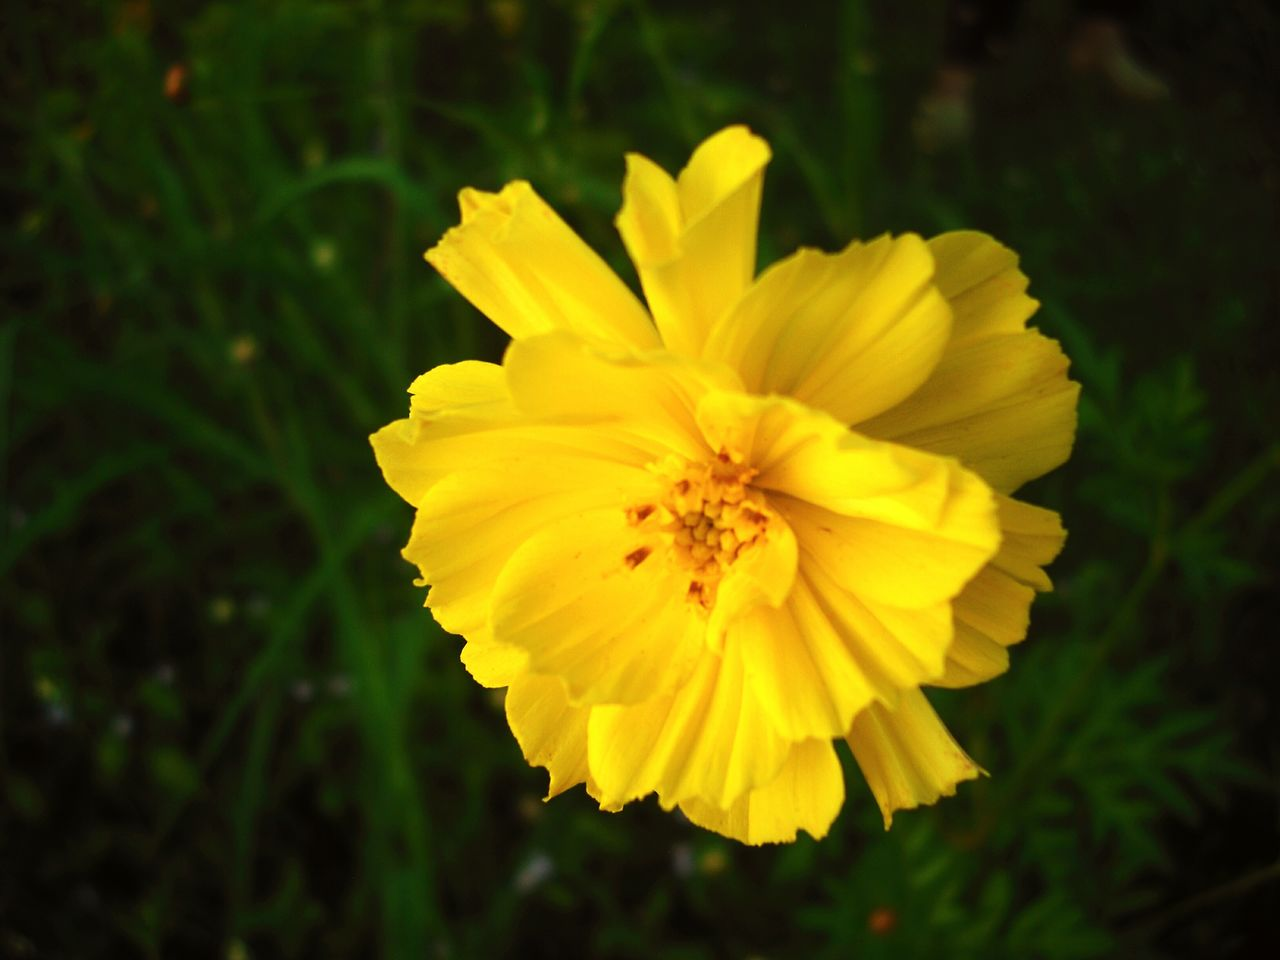 flower, yellow, petal, beauty in nature, nature, fragility, flower head, plant, growth, freshness, blooming, outdoors, no people, close-up, day